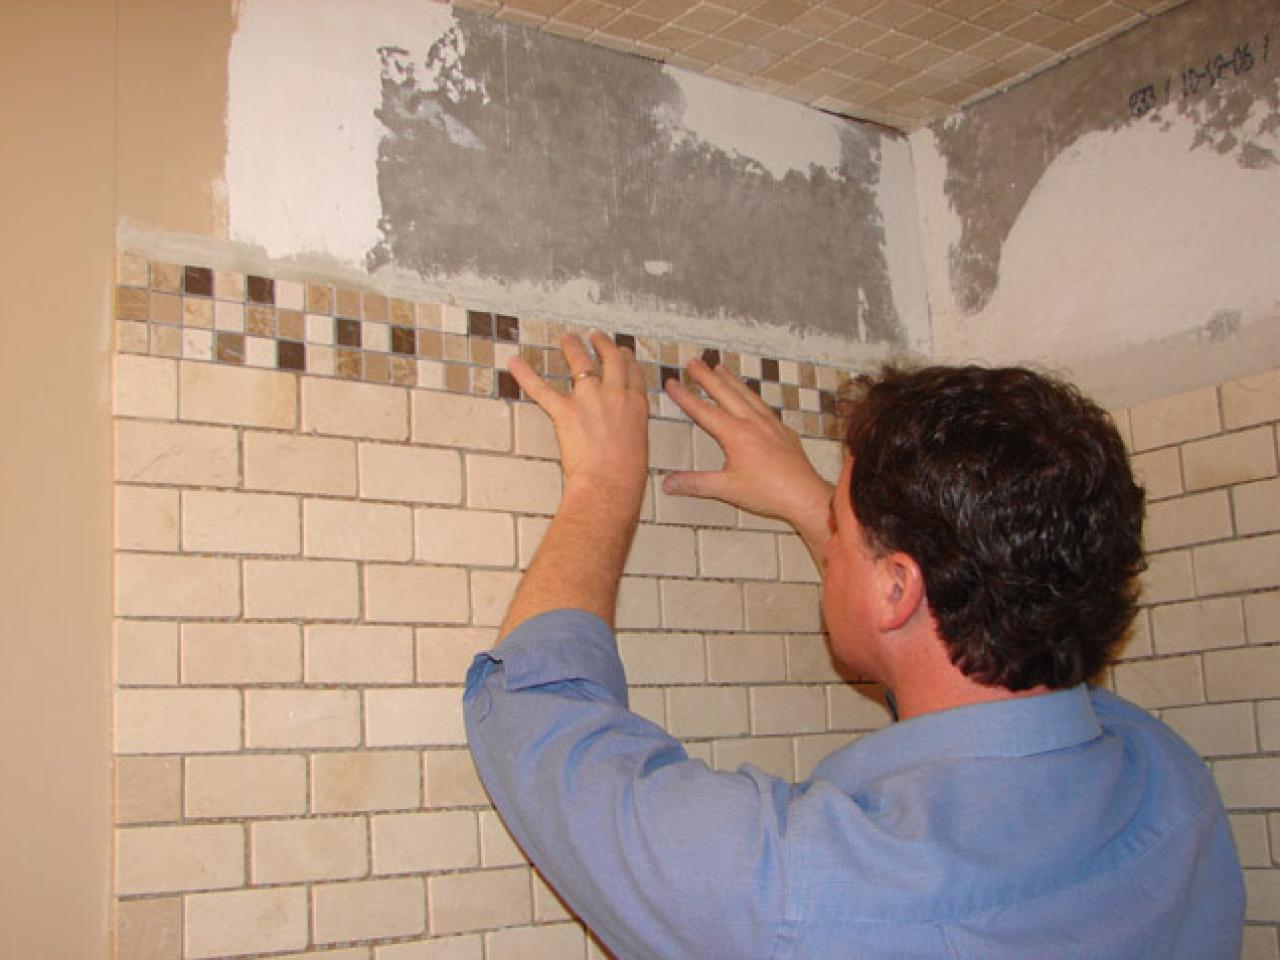 Diy bathroom tile - Step 7